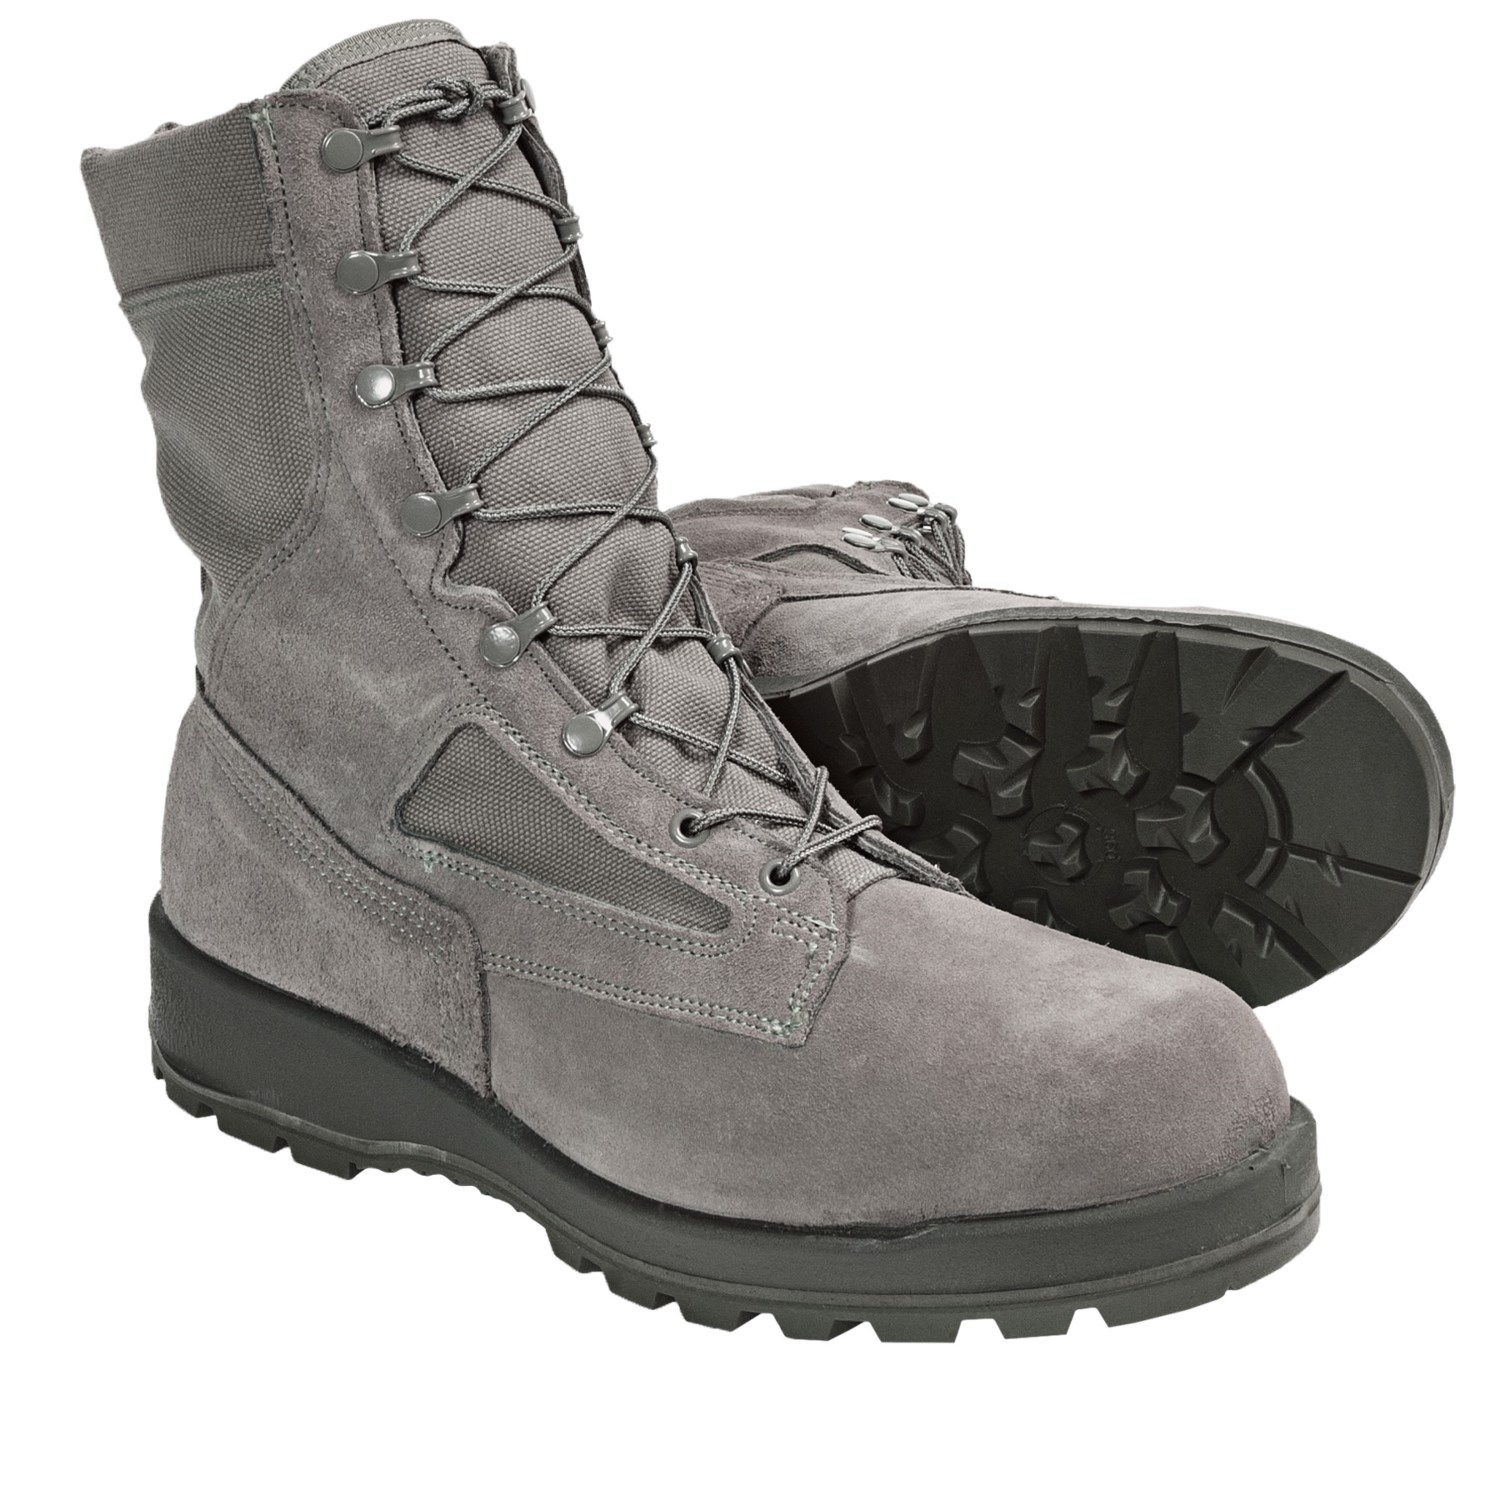 Wellco AF boots at Sierra